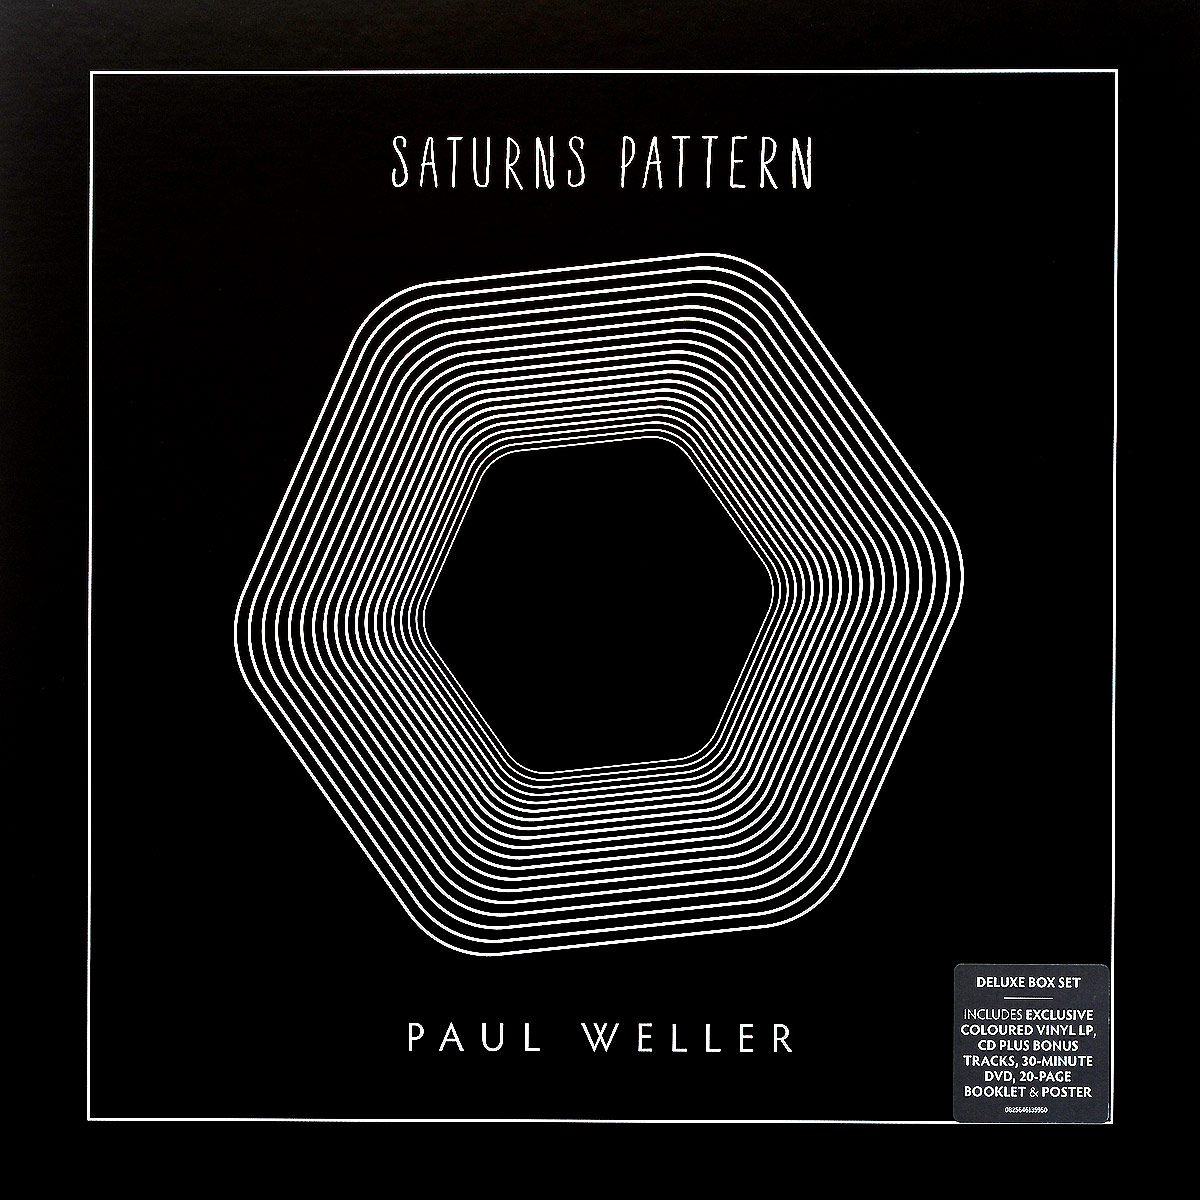 Пол Уэллер Paul Weller. Saturns Pattern. Deluxe Edition (LP + CD + DVD) cd диск simon paul original album classics paul simon songs from capeman hearts and bones you re the one there goes rhymin simon 5 cd